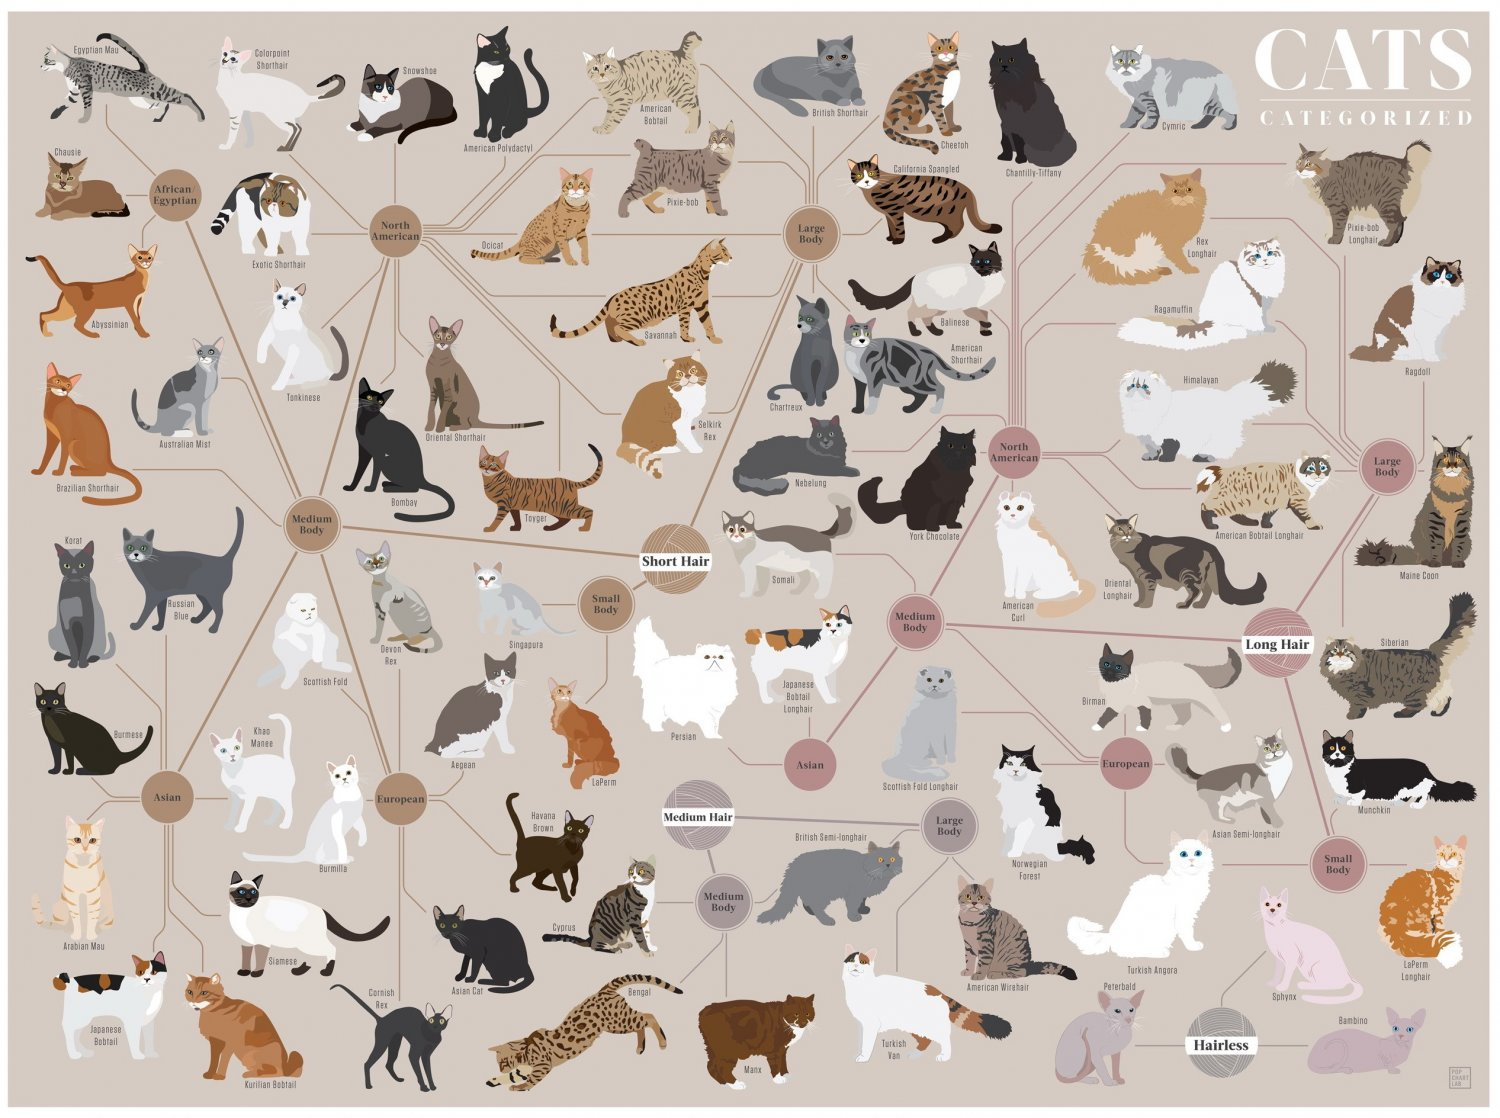 Cats Categorized Chart  18x28 inches Poster Print